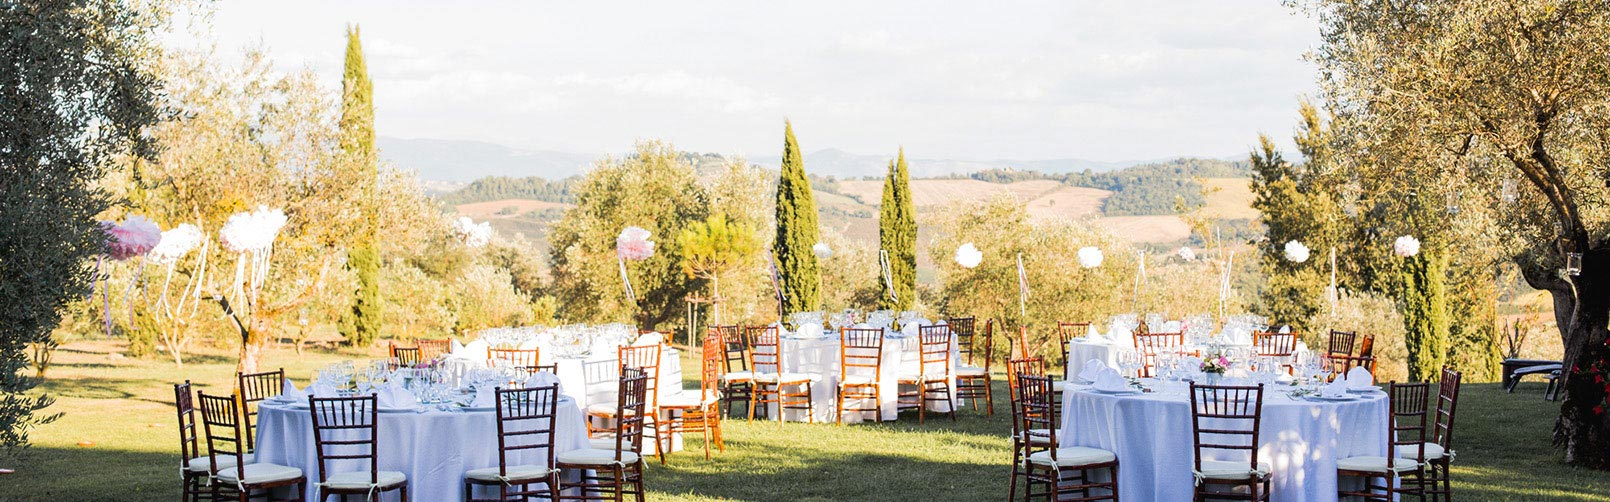 weddings-in-todi